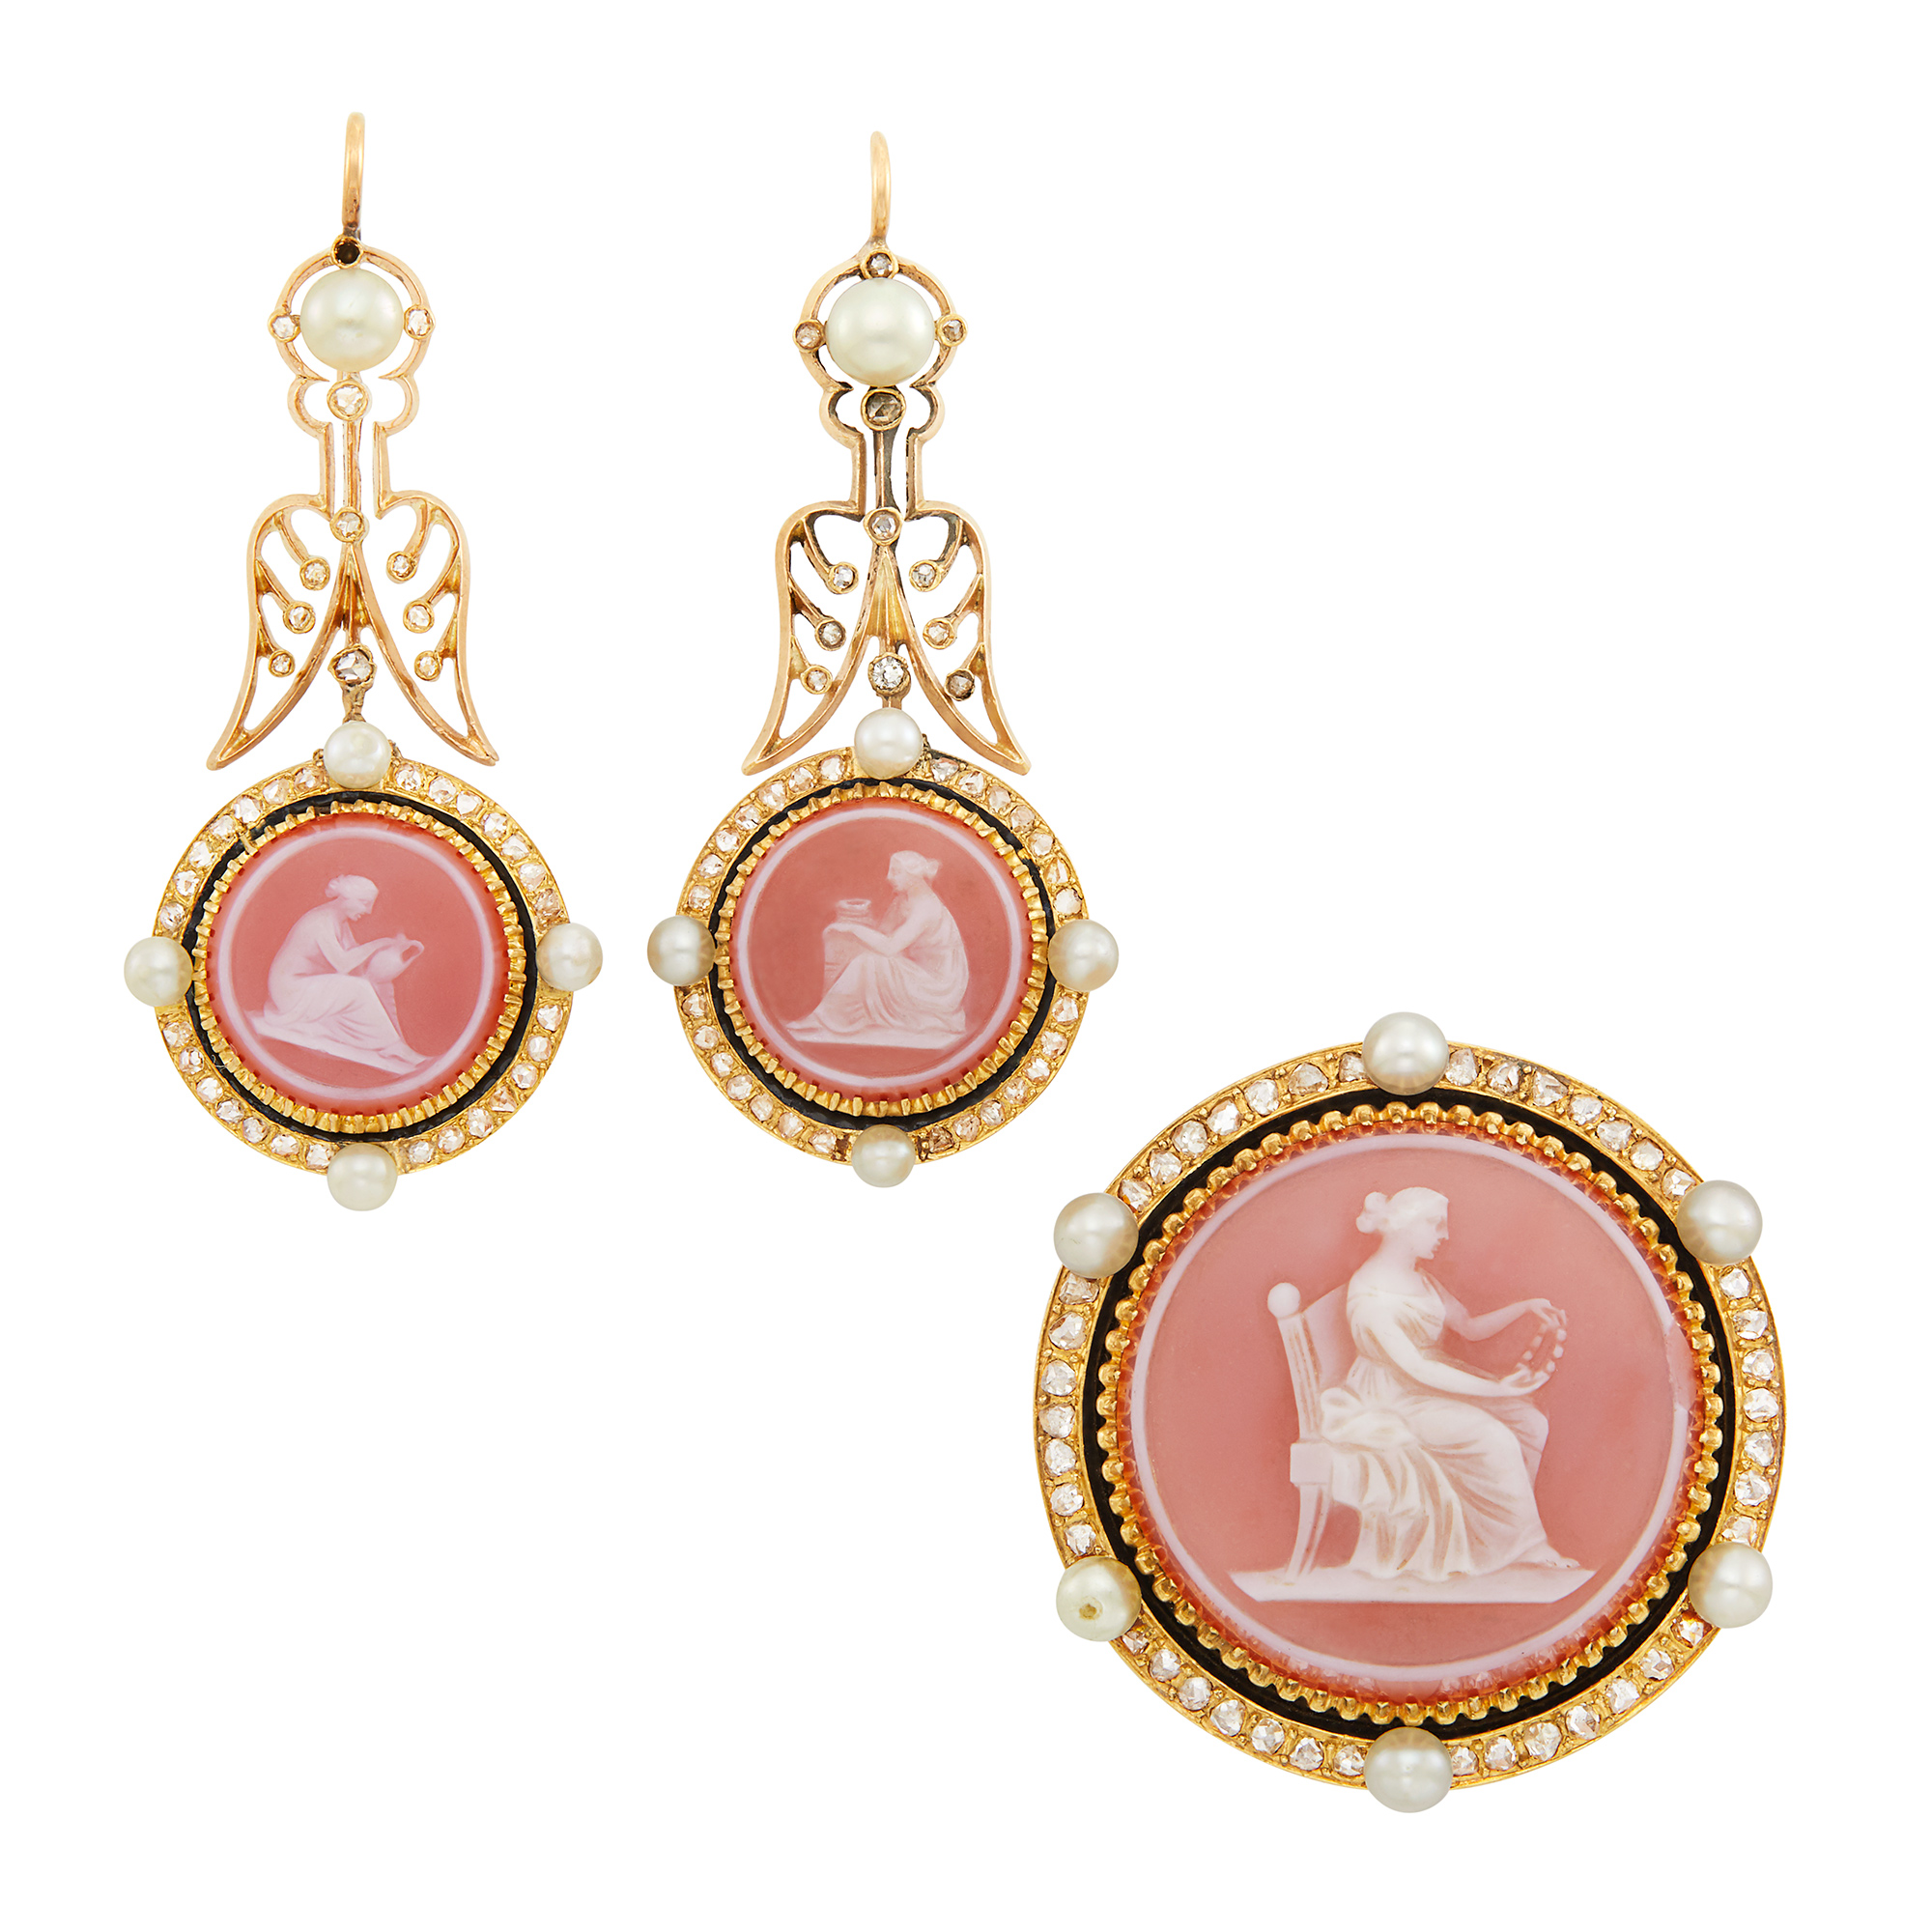 Lot image - Pair of Antique Gold, Carnelian Cameo, Button Pearl, Diamond and Enamel Pendant-Earrings and Pendant-Brooch